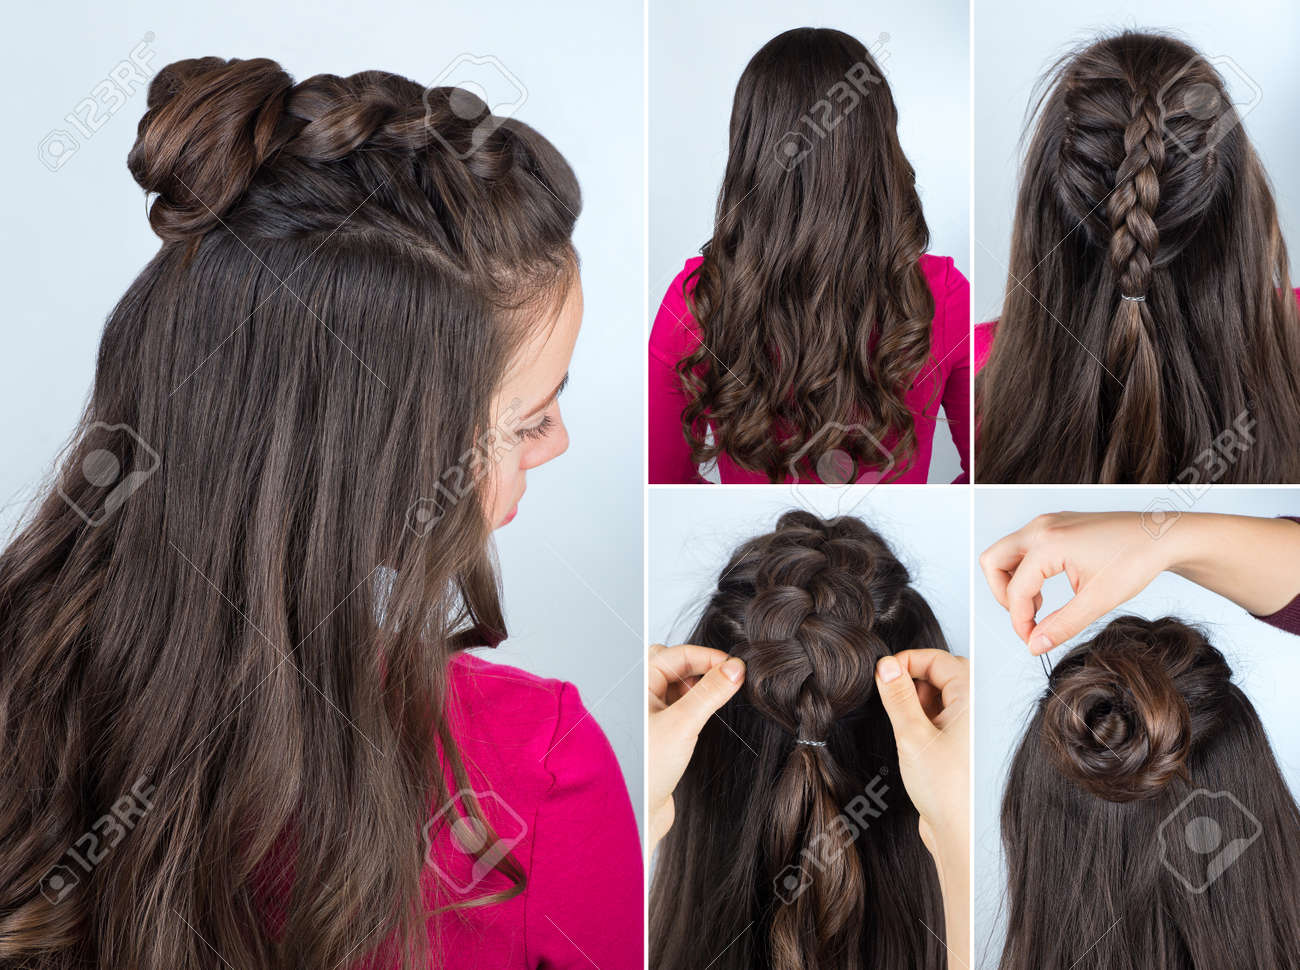 Modern Hairstyle Twisted Bun And Braid With Curly Loose Hair